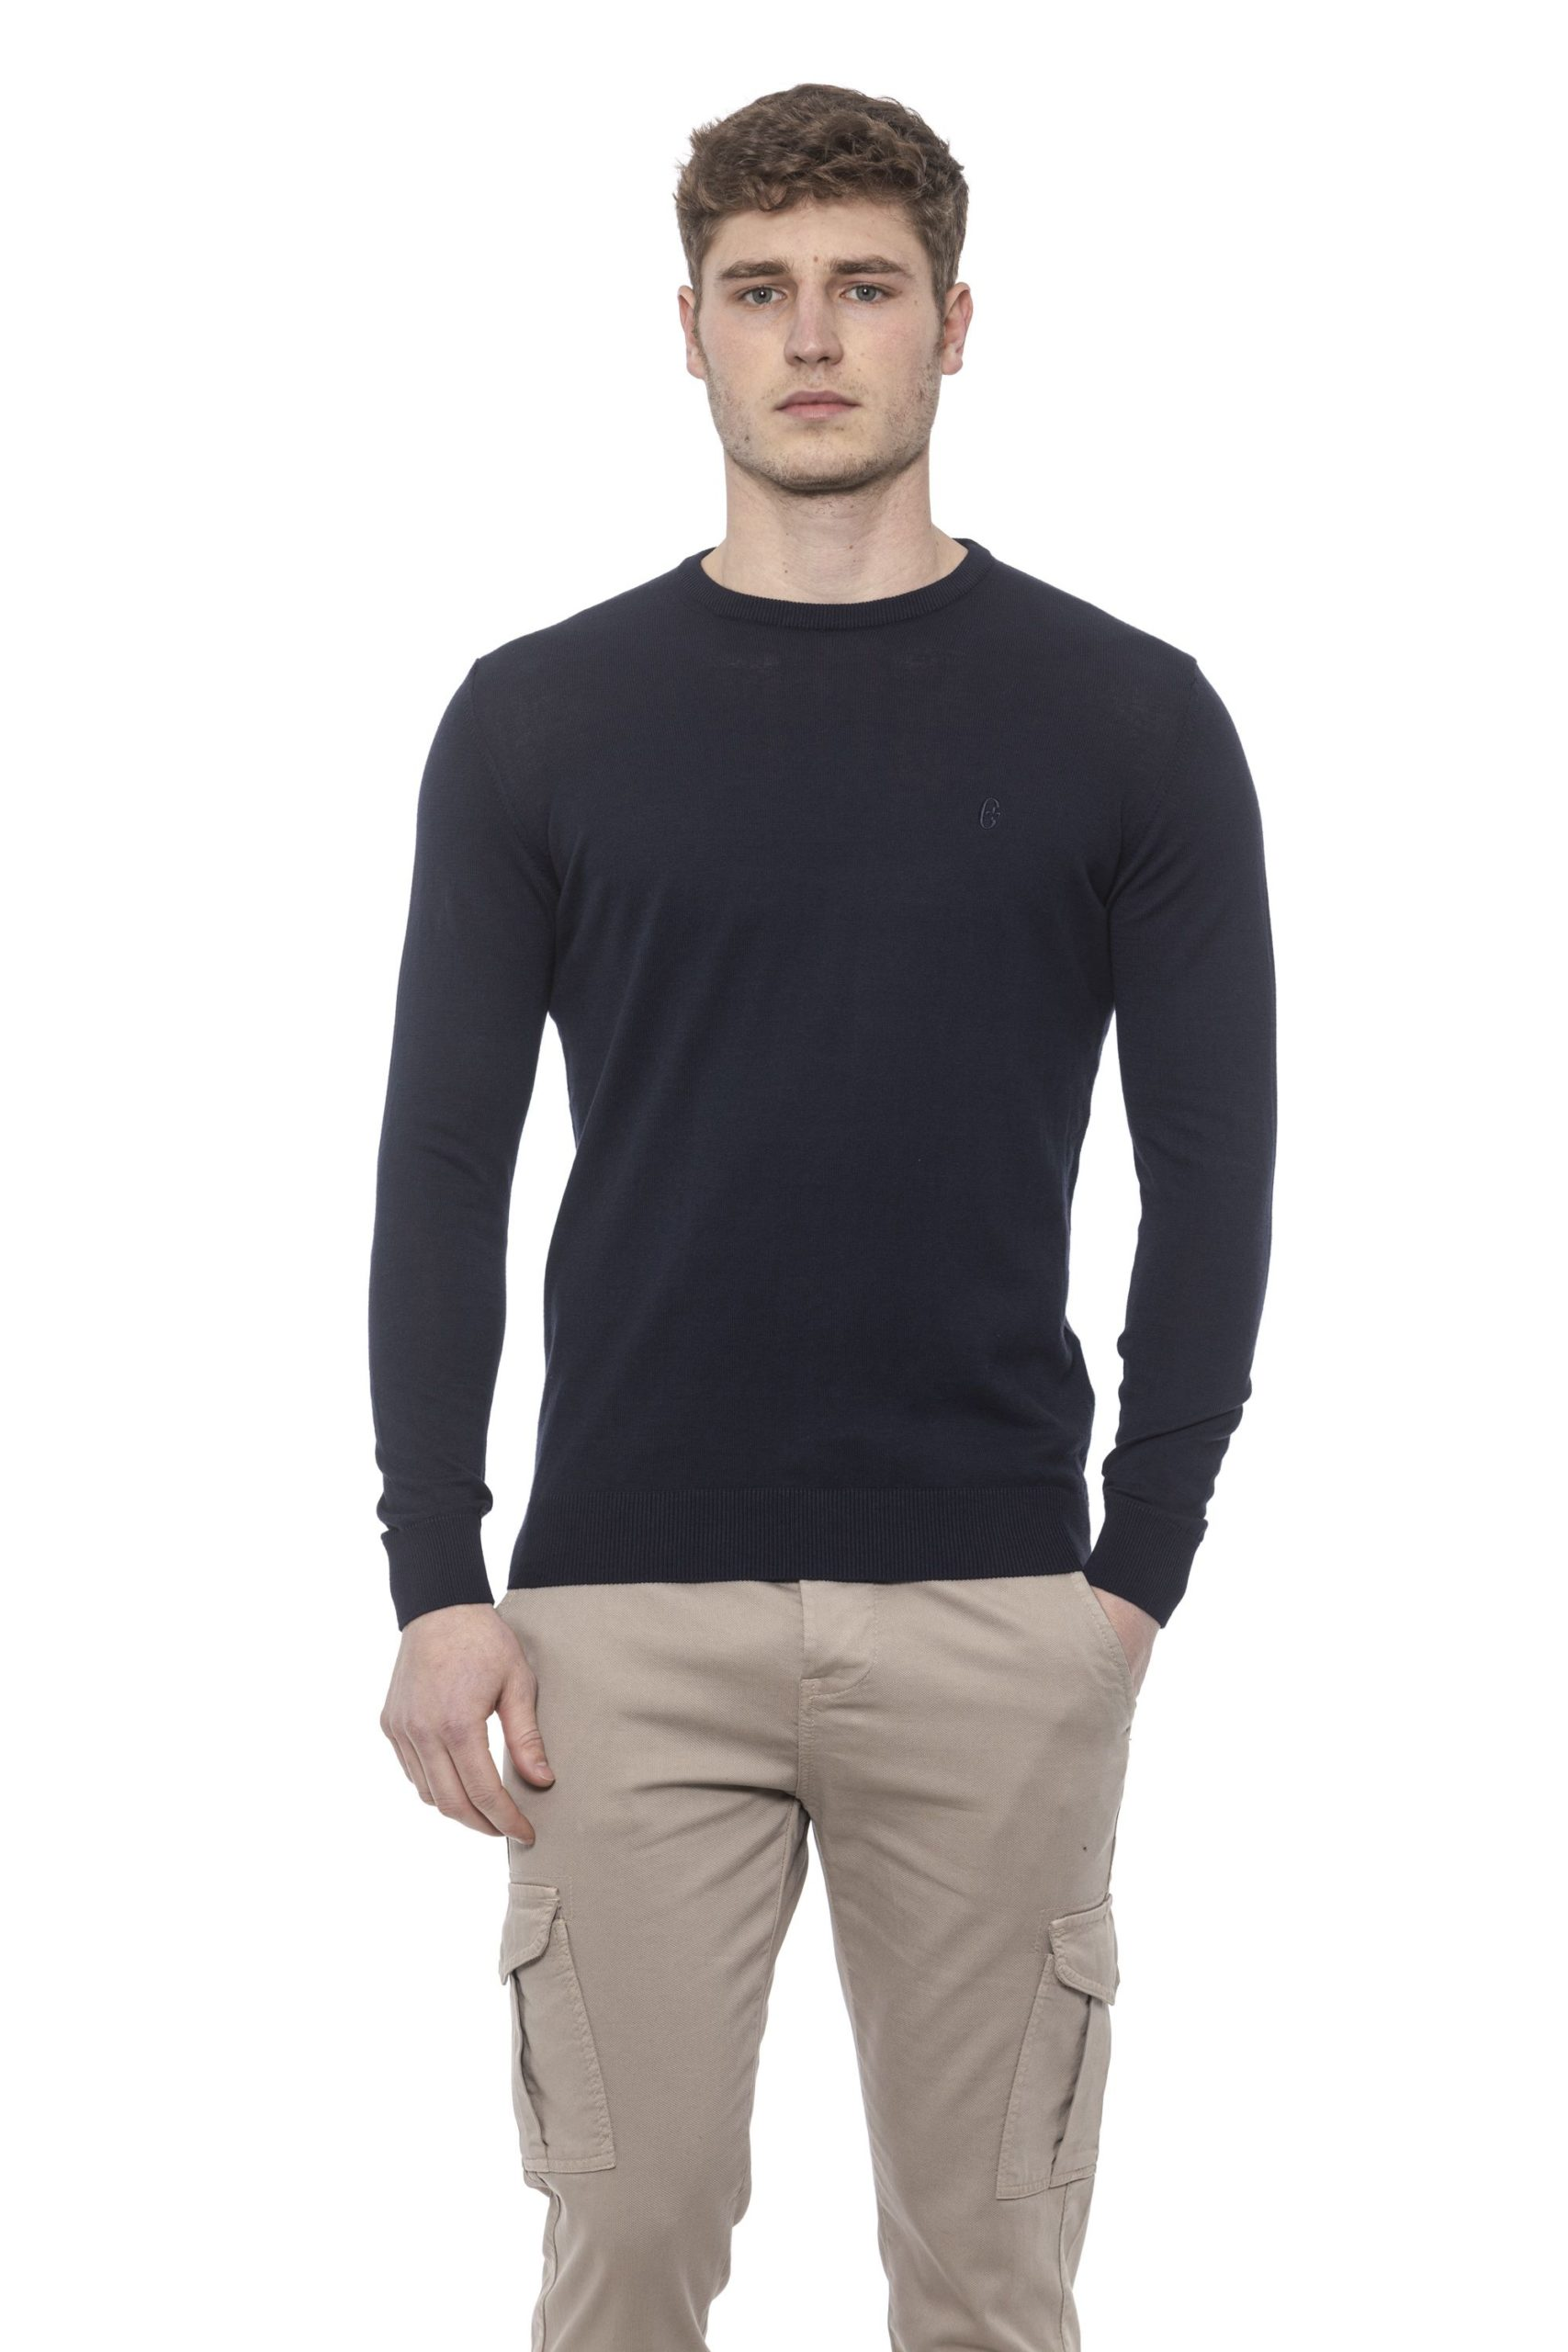 Conte of Florence Men's Sweater Blue CO1376426 - S